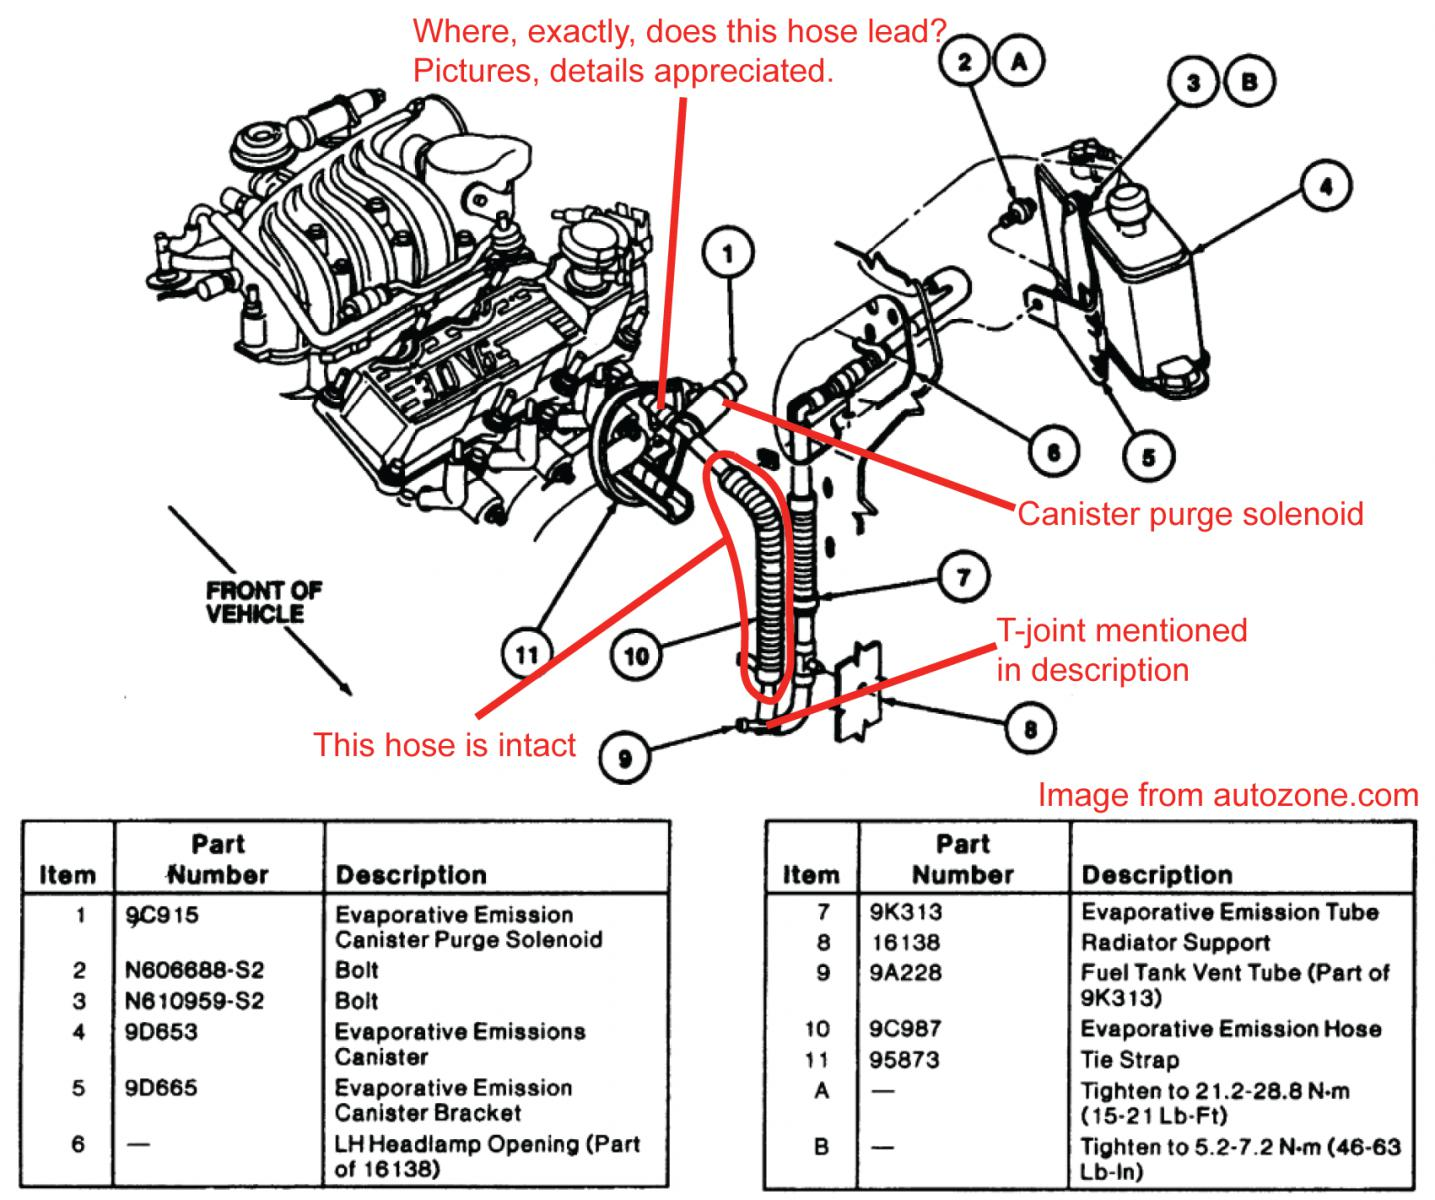 Mitsubishi 3 0 Engine Hose Diagram Wiring Library 1994 Toyota Intake 2001 Mercury Sable Fuel Vapor Return Tube Connection